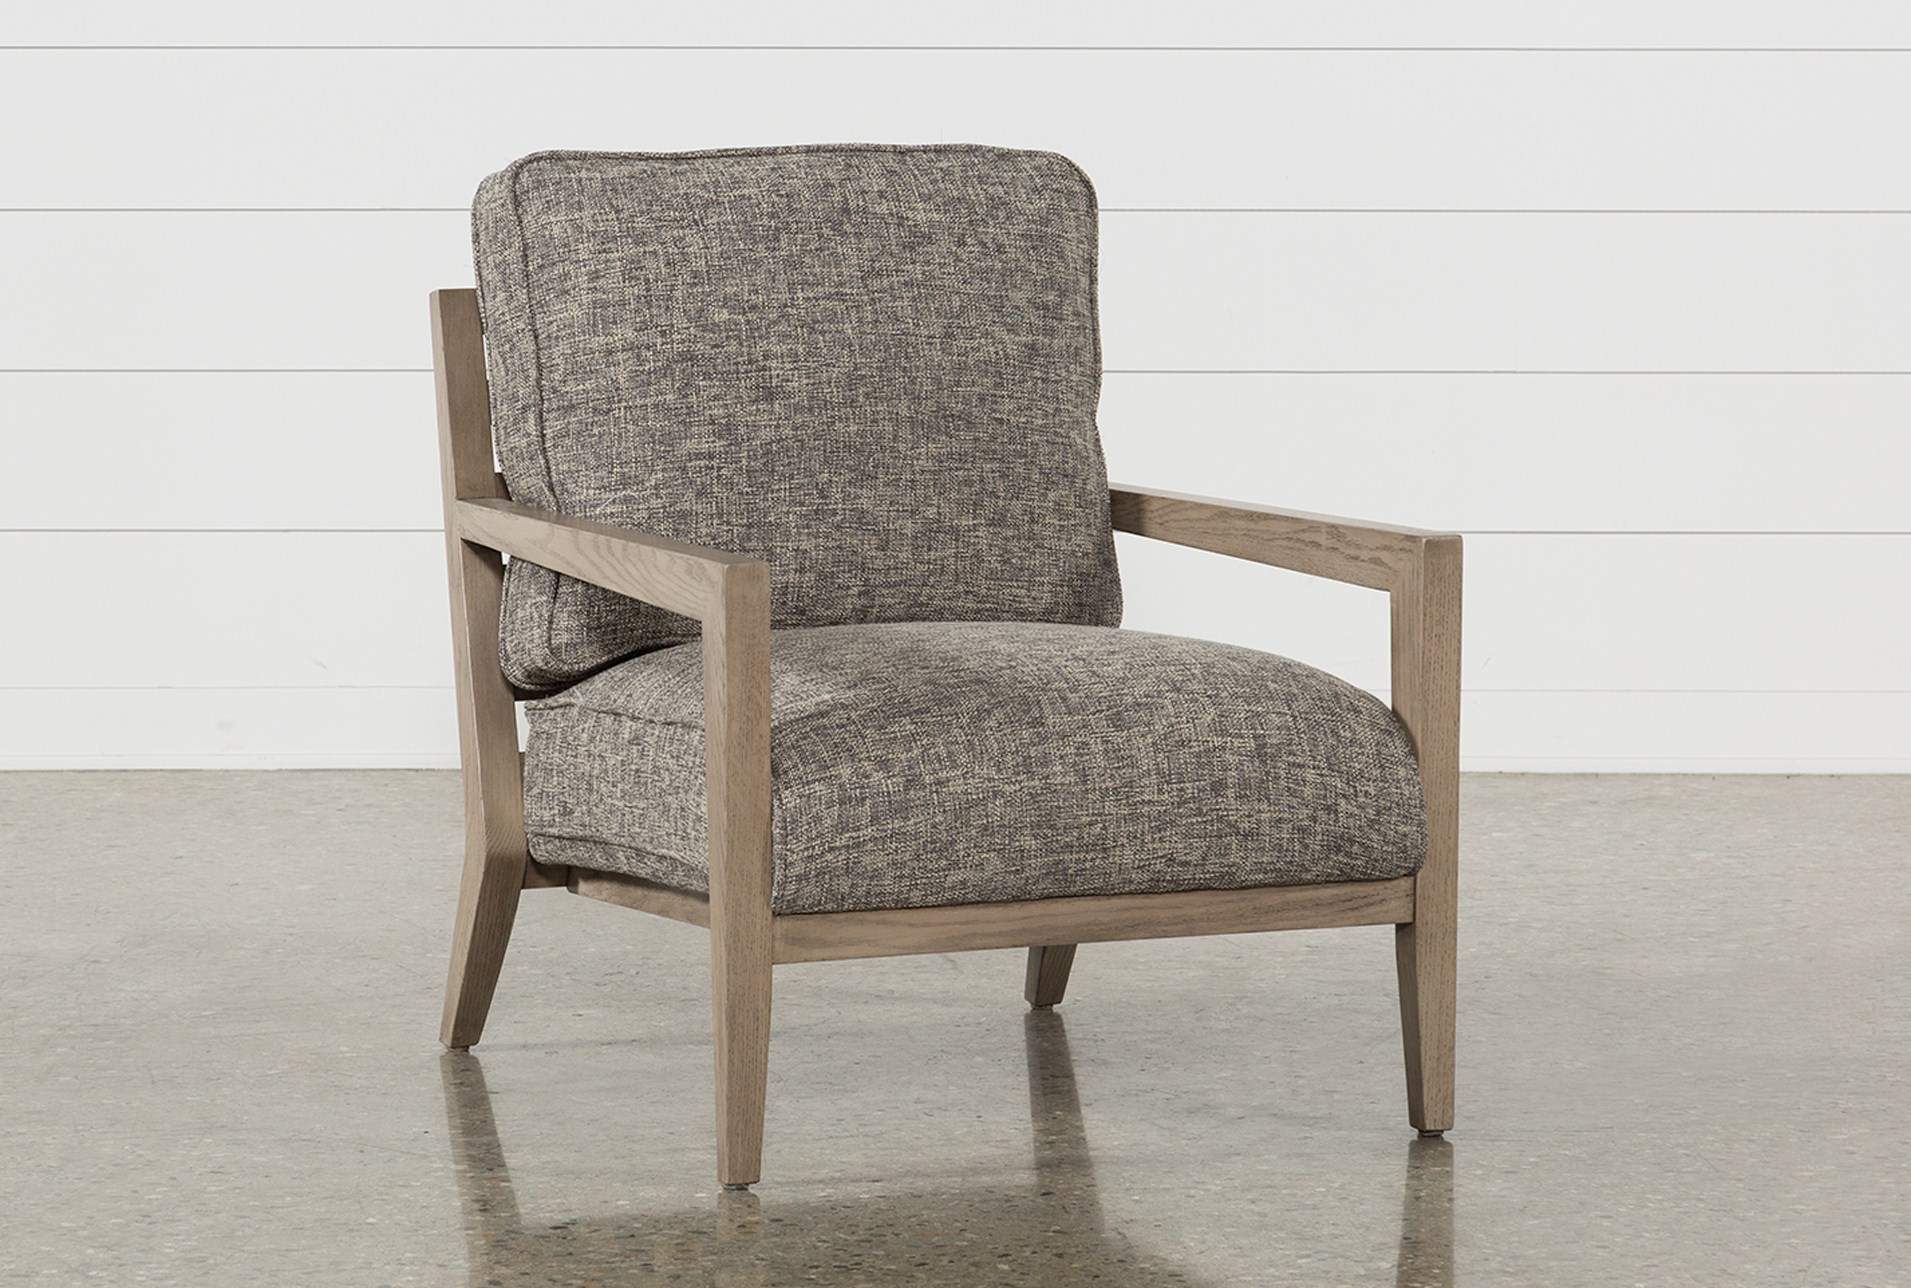 Caressa grey accent chair qty 1 has been successfully added to your cart